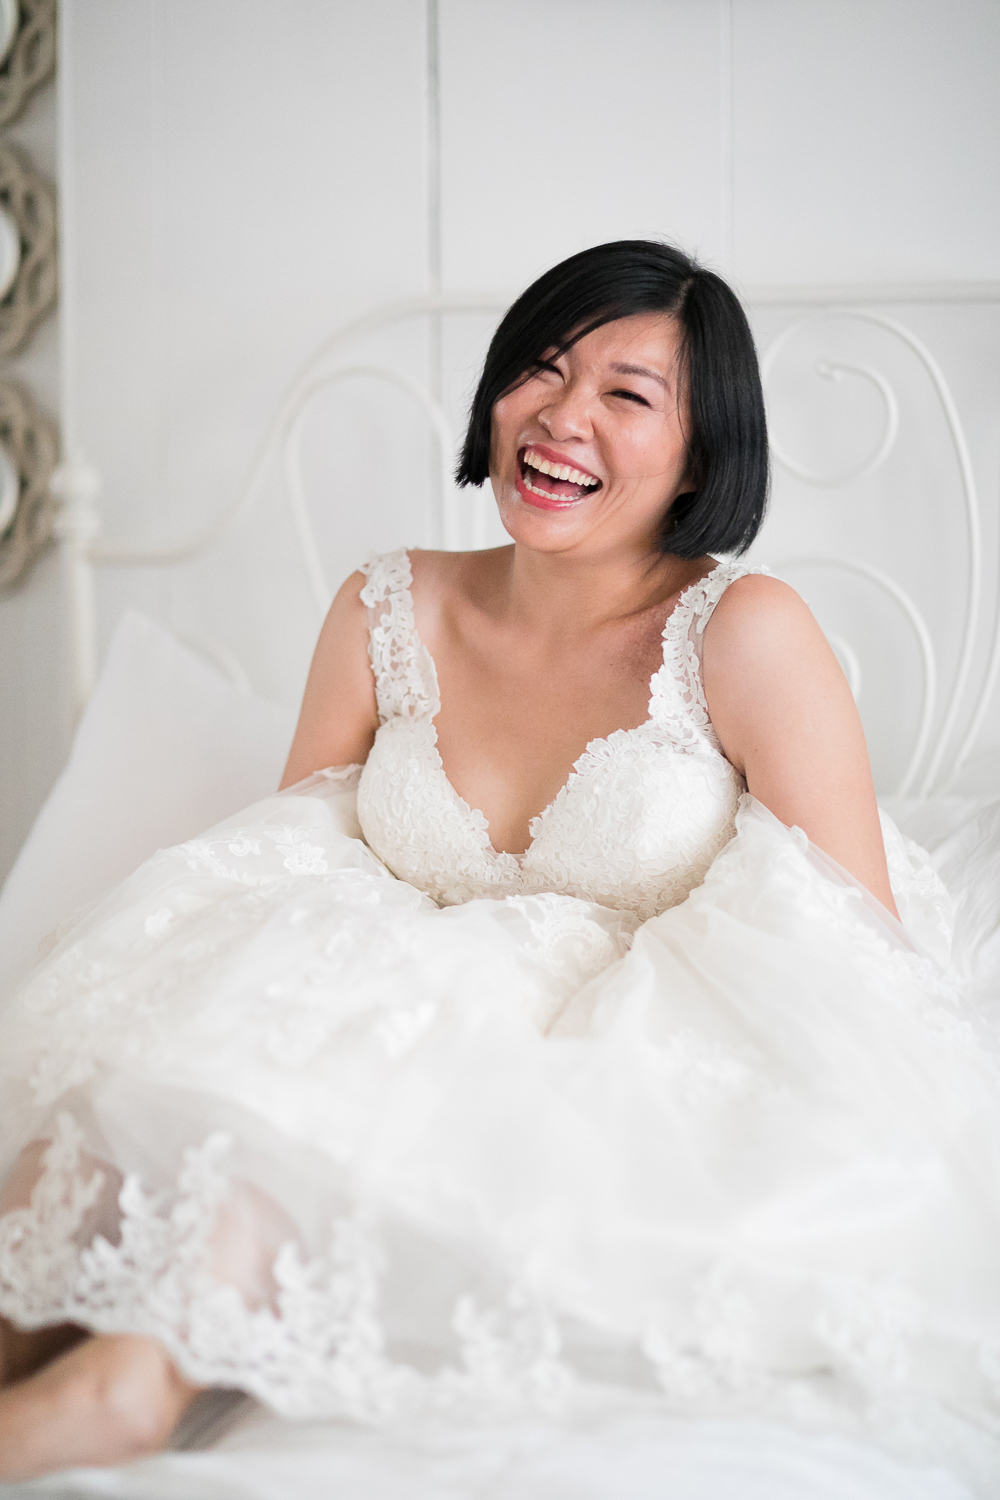 A bride in her wedding gown, laughing while sitting in a poof of a lacy skirt.